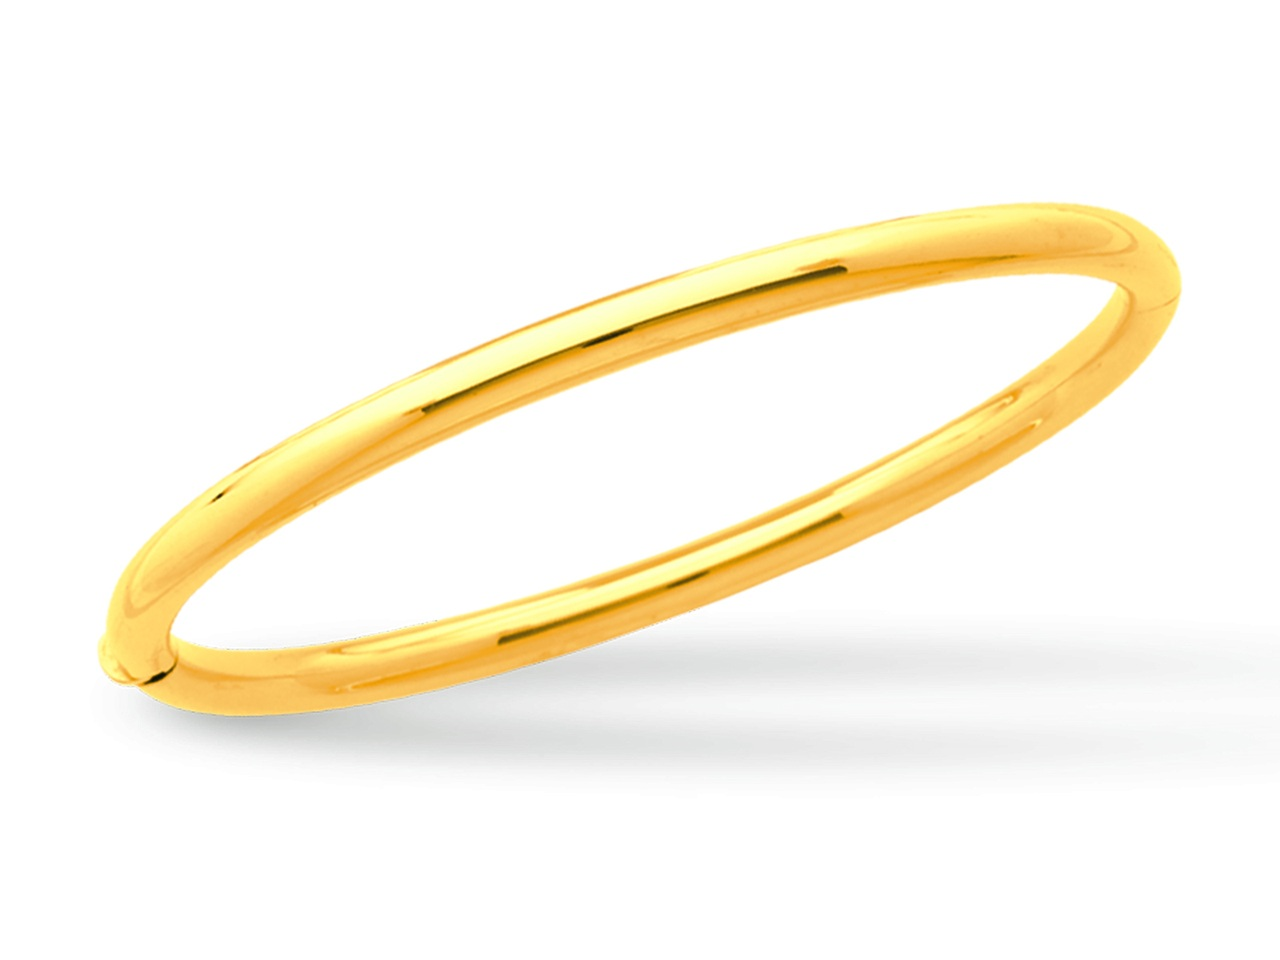 Jonc ouvrant, Or jaune 18k, fil rond 4 mm, forme Ovale. Diam 63 mm